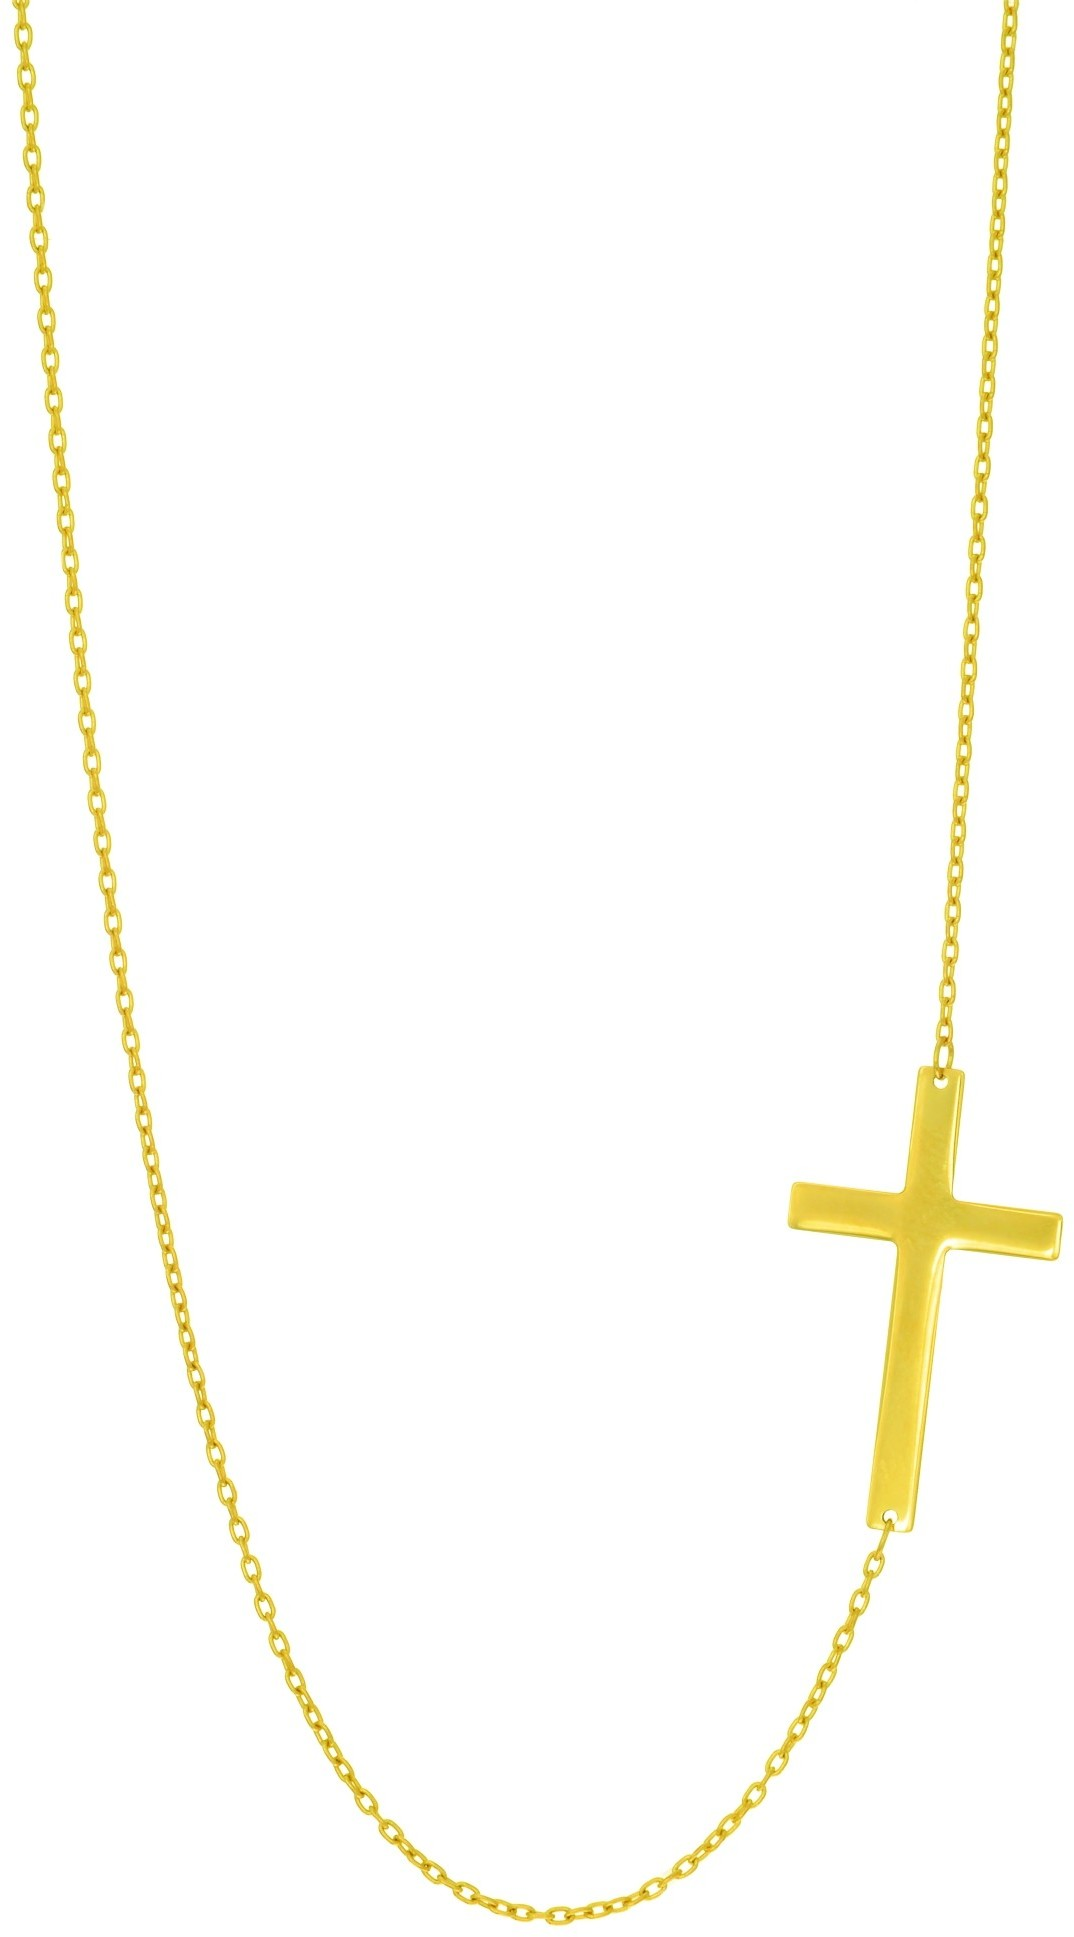 "18"" 14K Yellow Gold 1.05mm (0.04"") Shiny Oval Cable Chain w/ Sideways Cross Necklace"